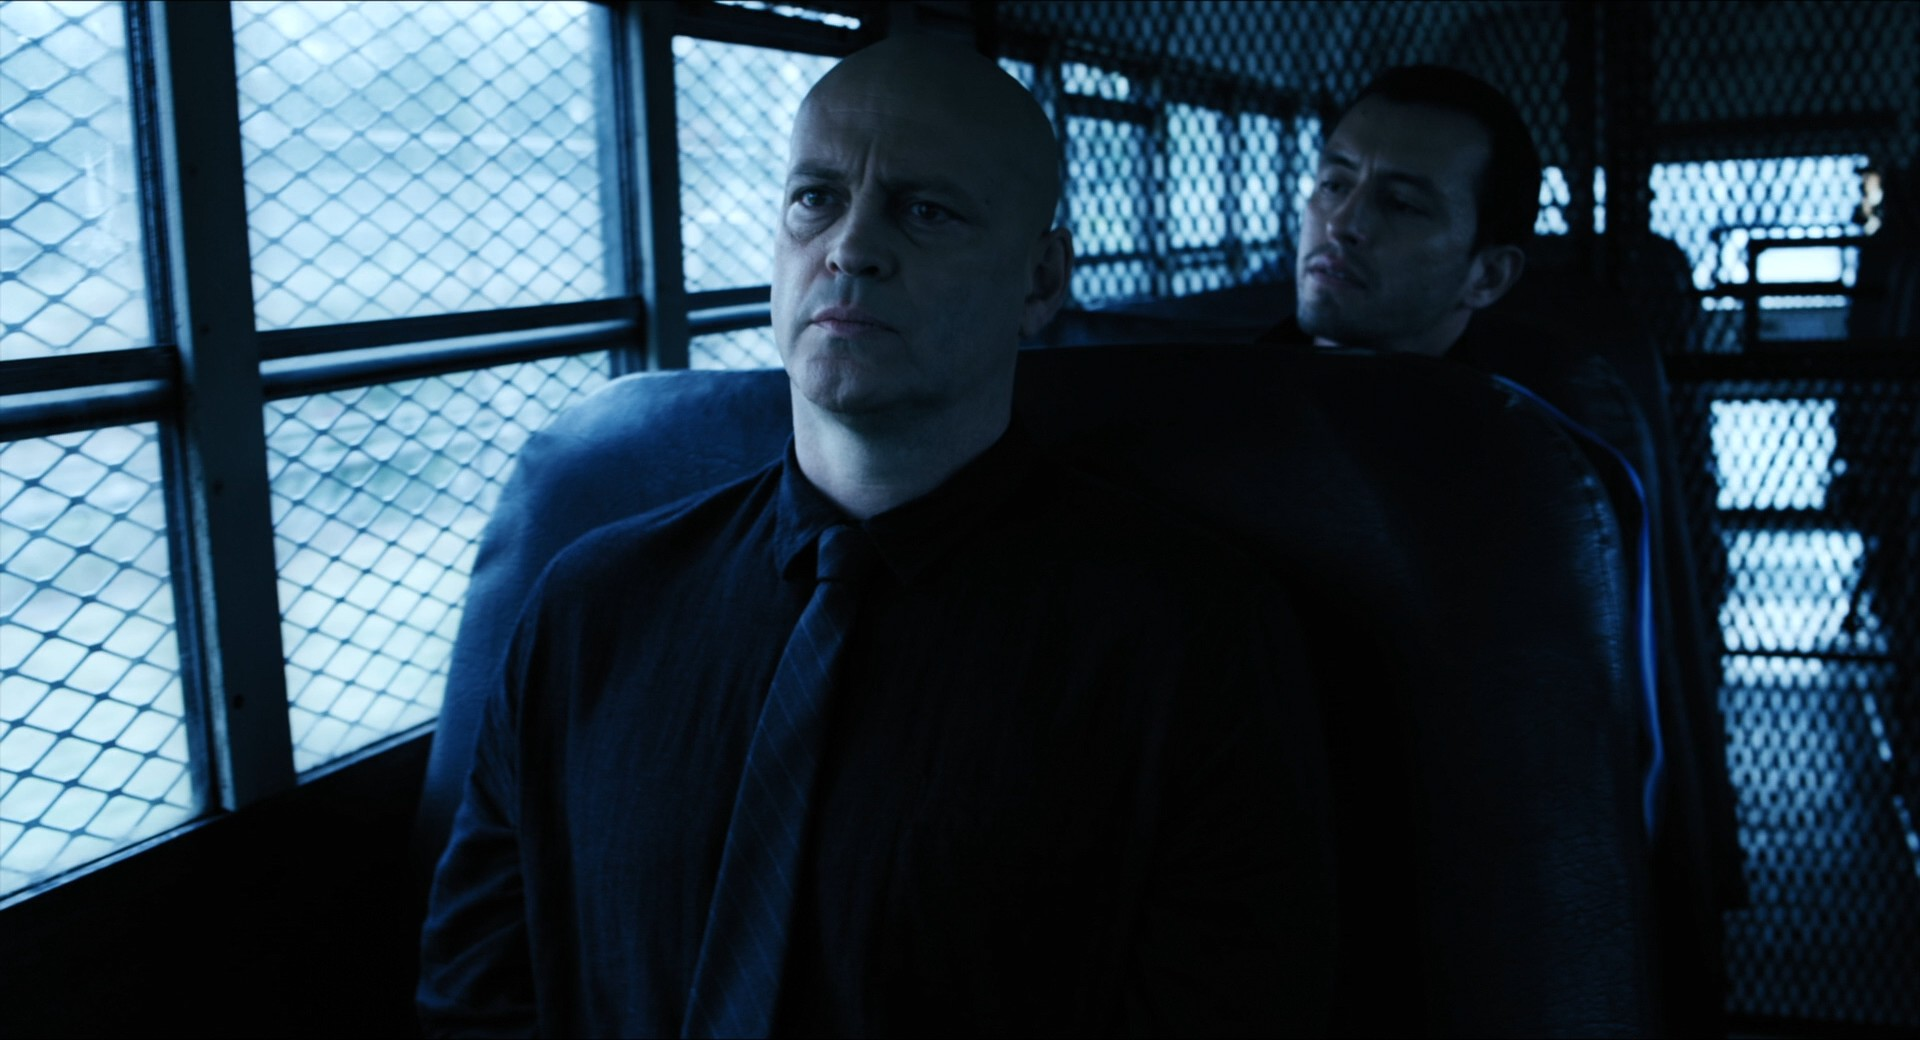 Драка в блоке 99 / Brawl in Cell Block 99 (2017) BDRip 1080p